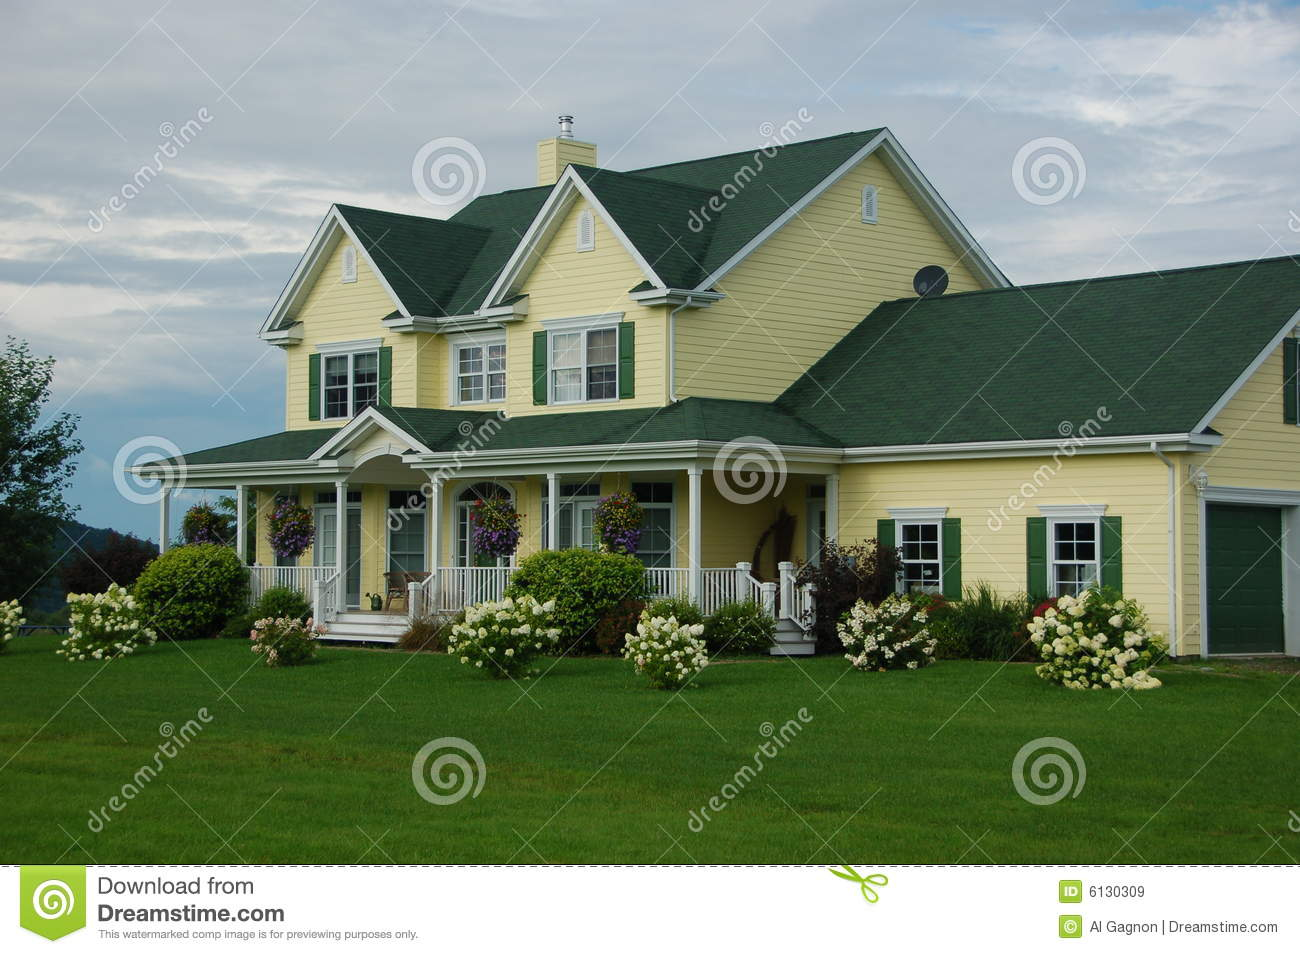 Country house royalty free stock images image 6130309 for Country house online